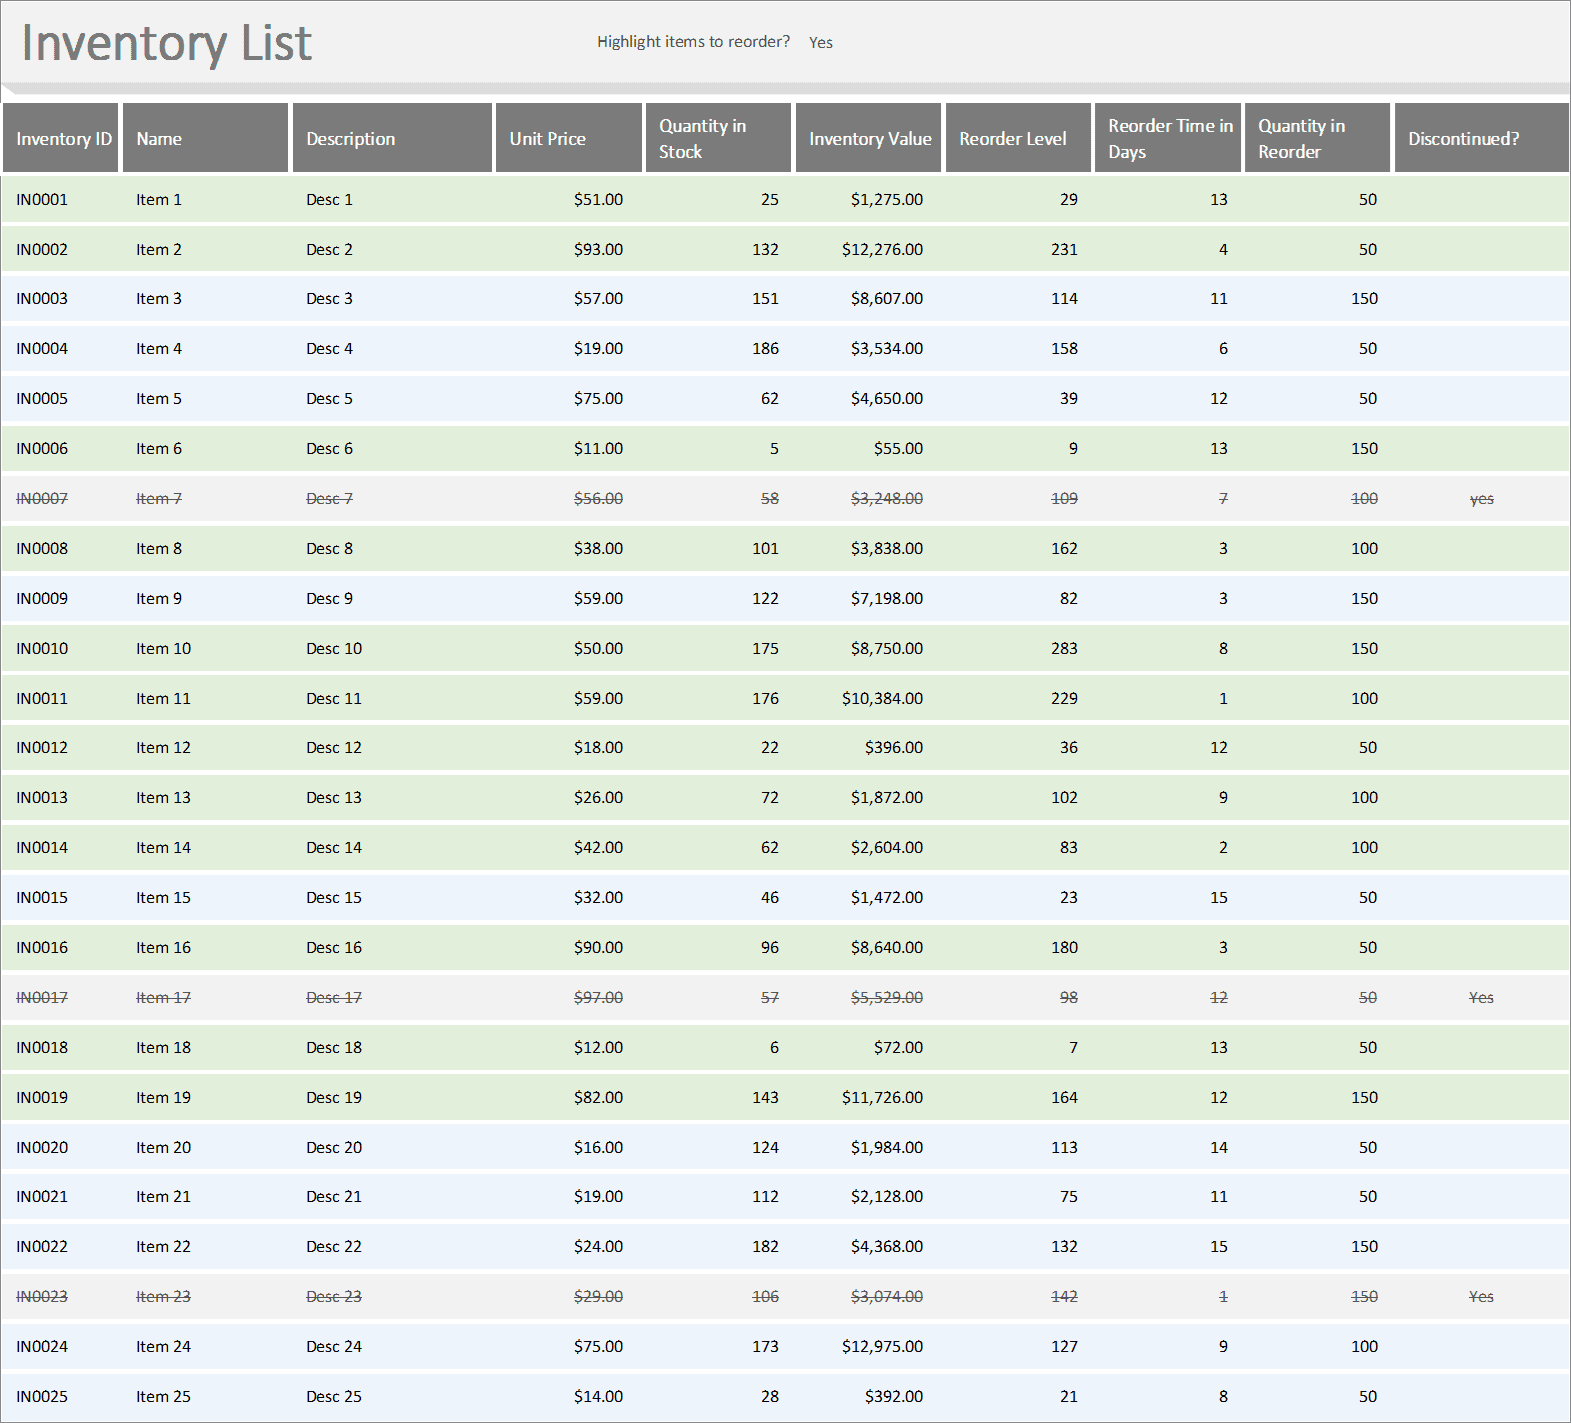 Inventory Excel List With Reorder